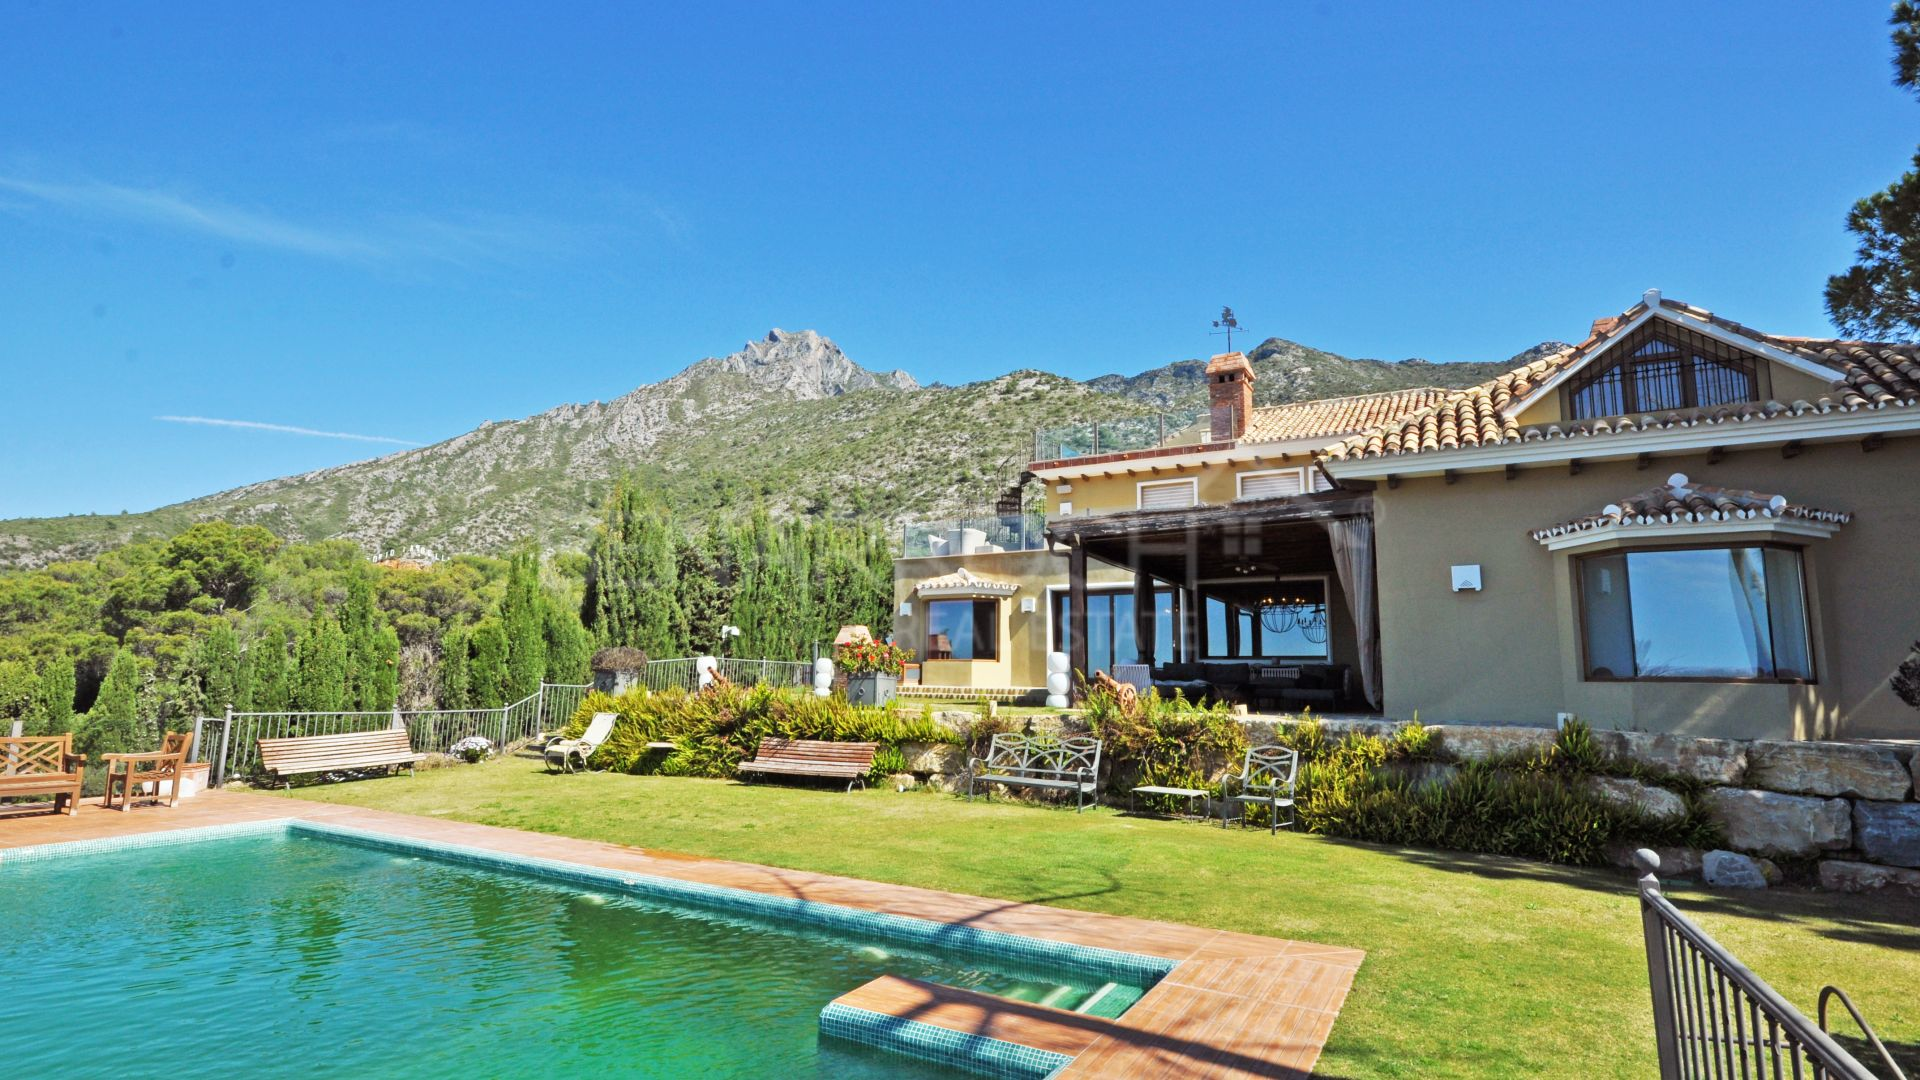 Villa with panoramic views in Sierra Blanca, Marbella